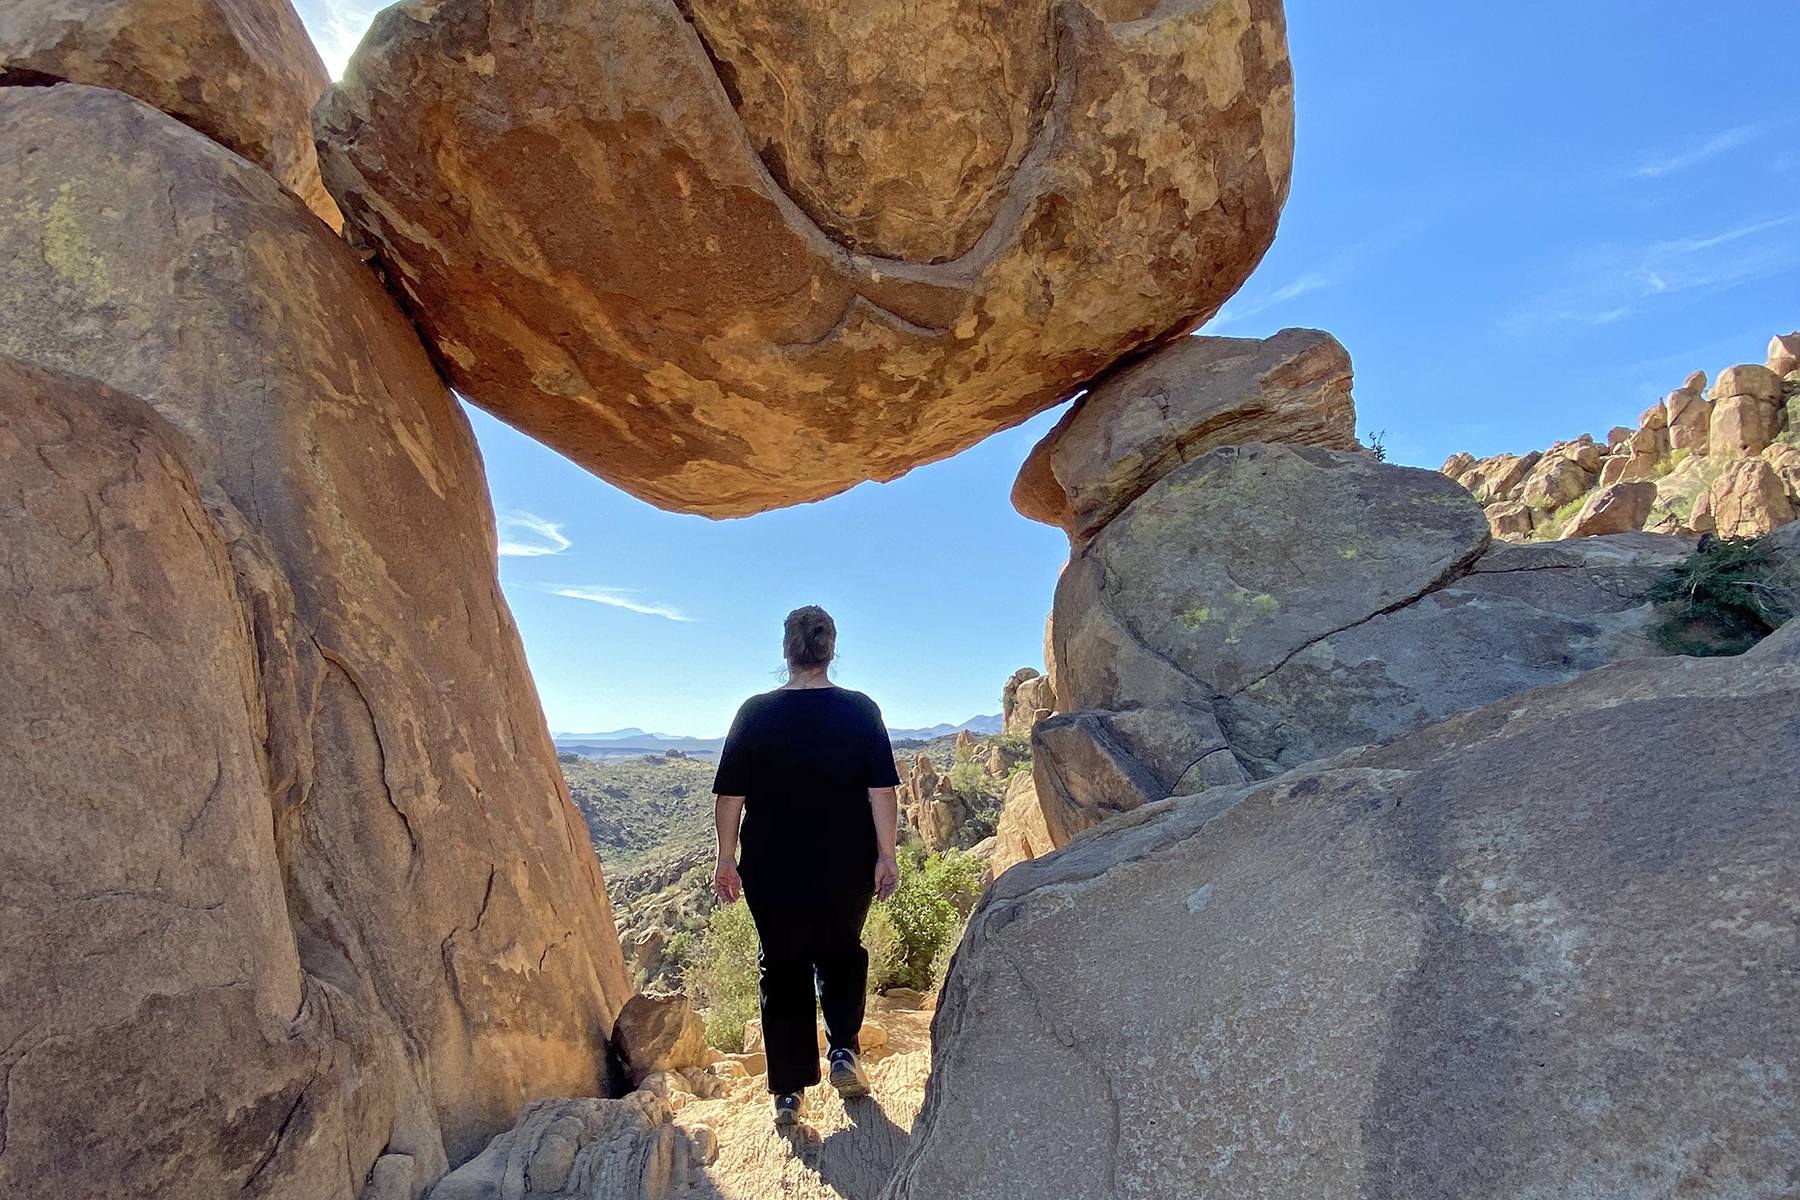 Reisevideo: Highlights im Big Bend National Park in West-Texas